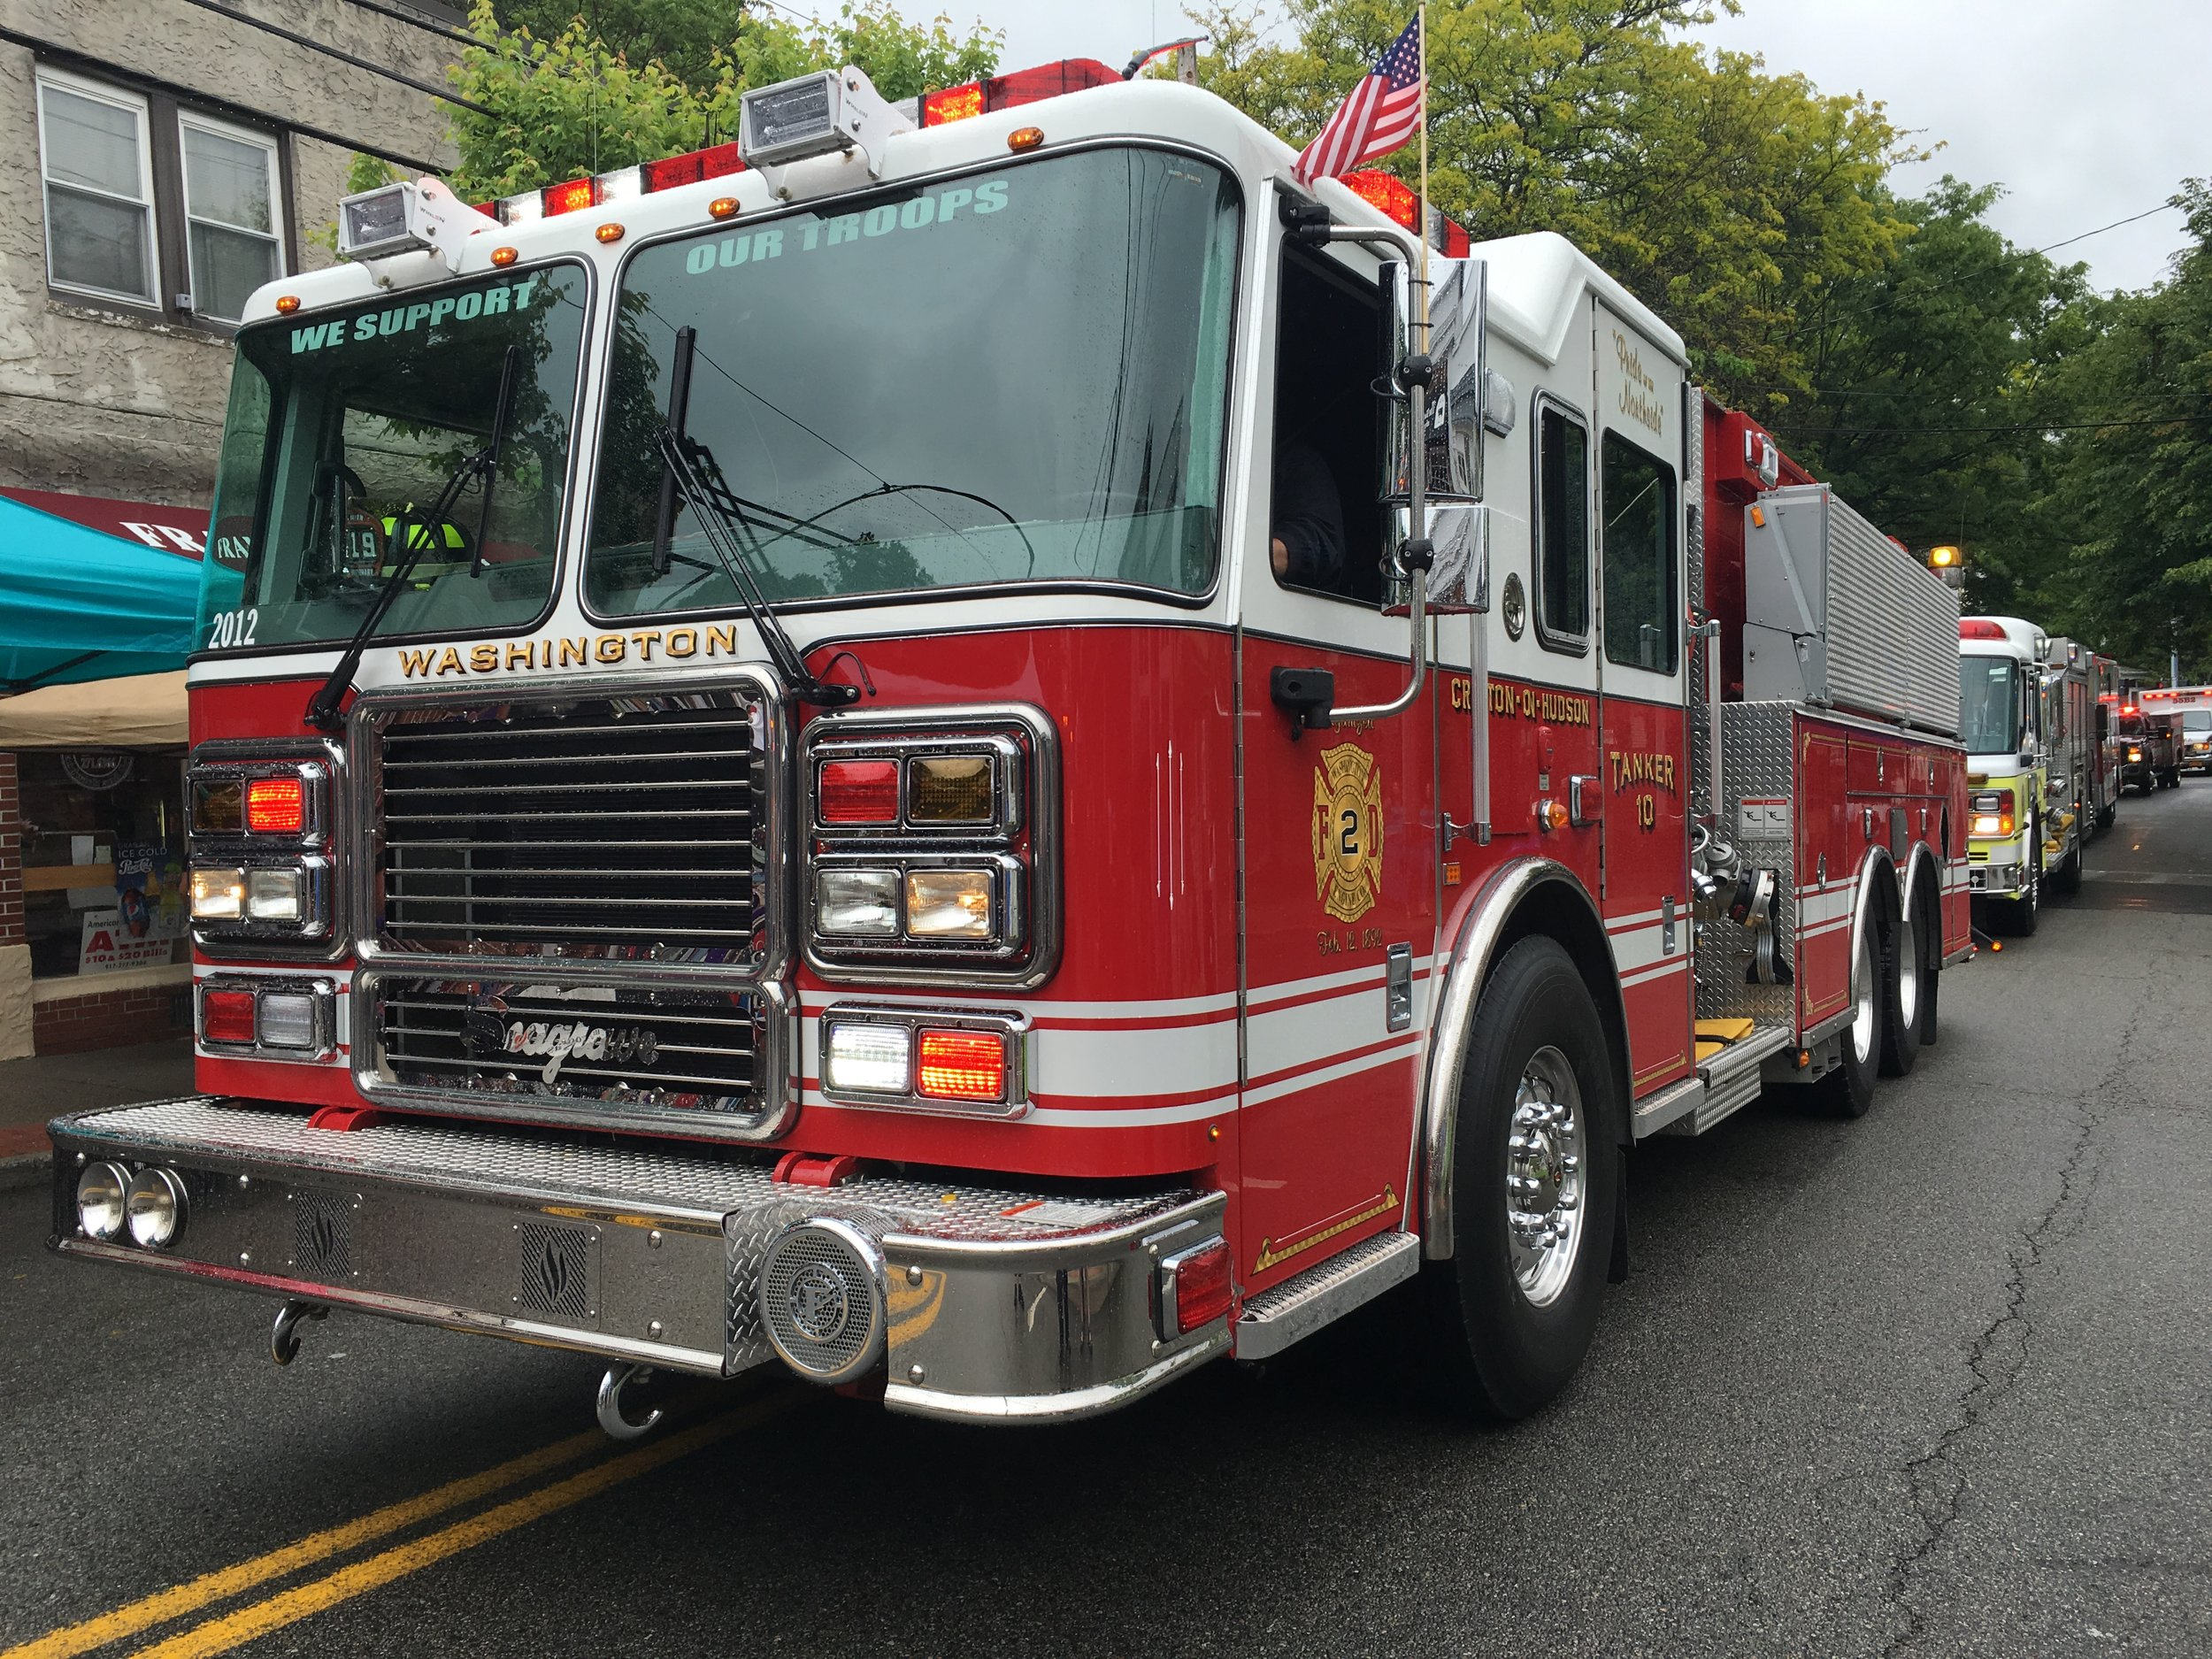 The Croton Fire Department has a fleet of seven rigs with an approximate value of $3-3.5 million dollars.